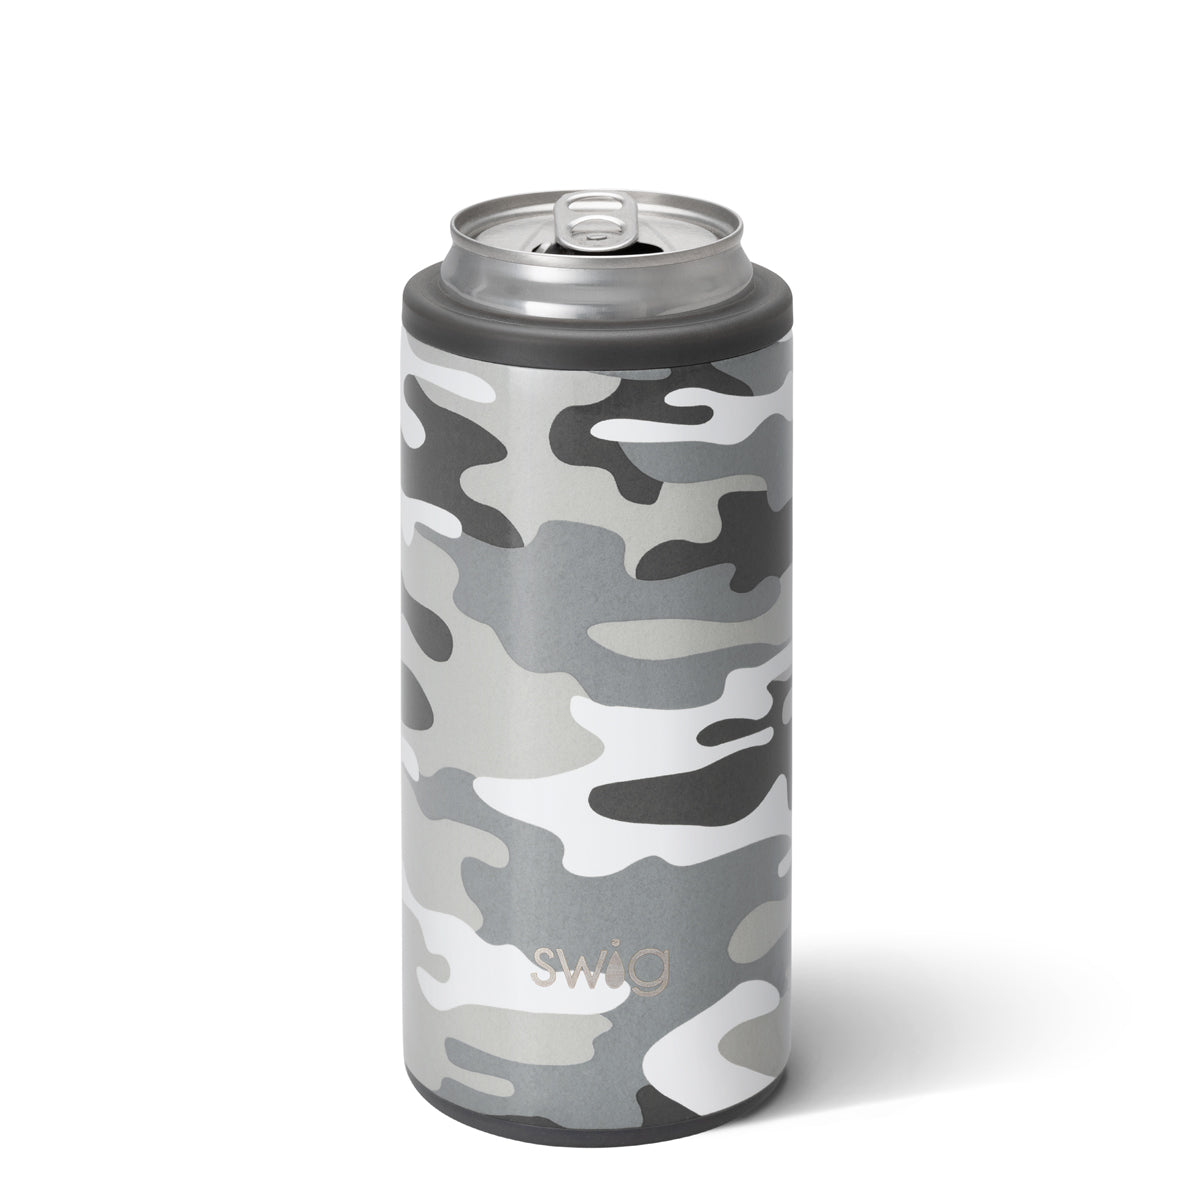 Swig 12oz Can Cooler Incognito Came